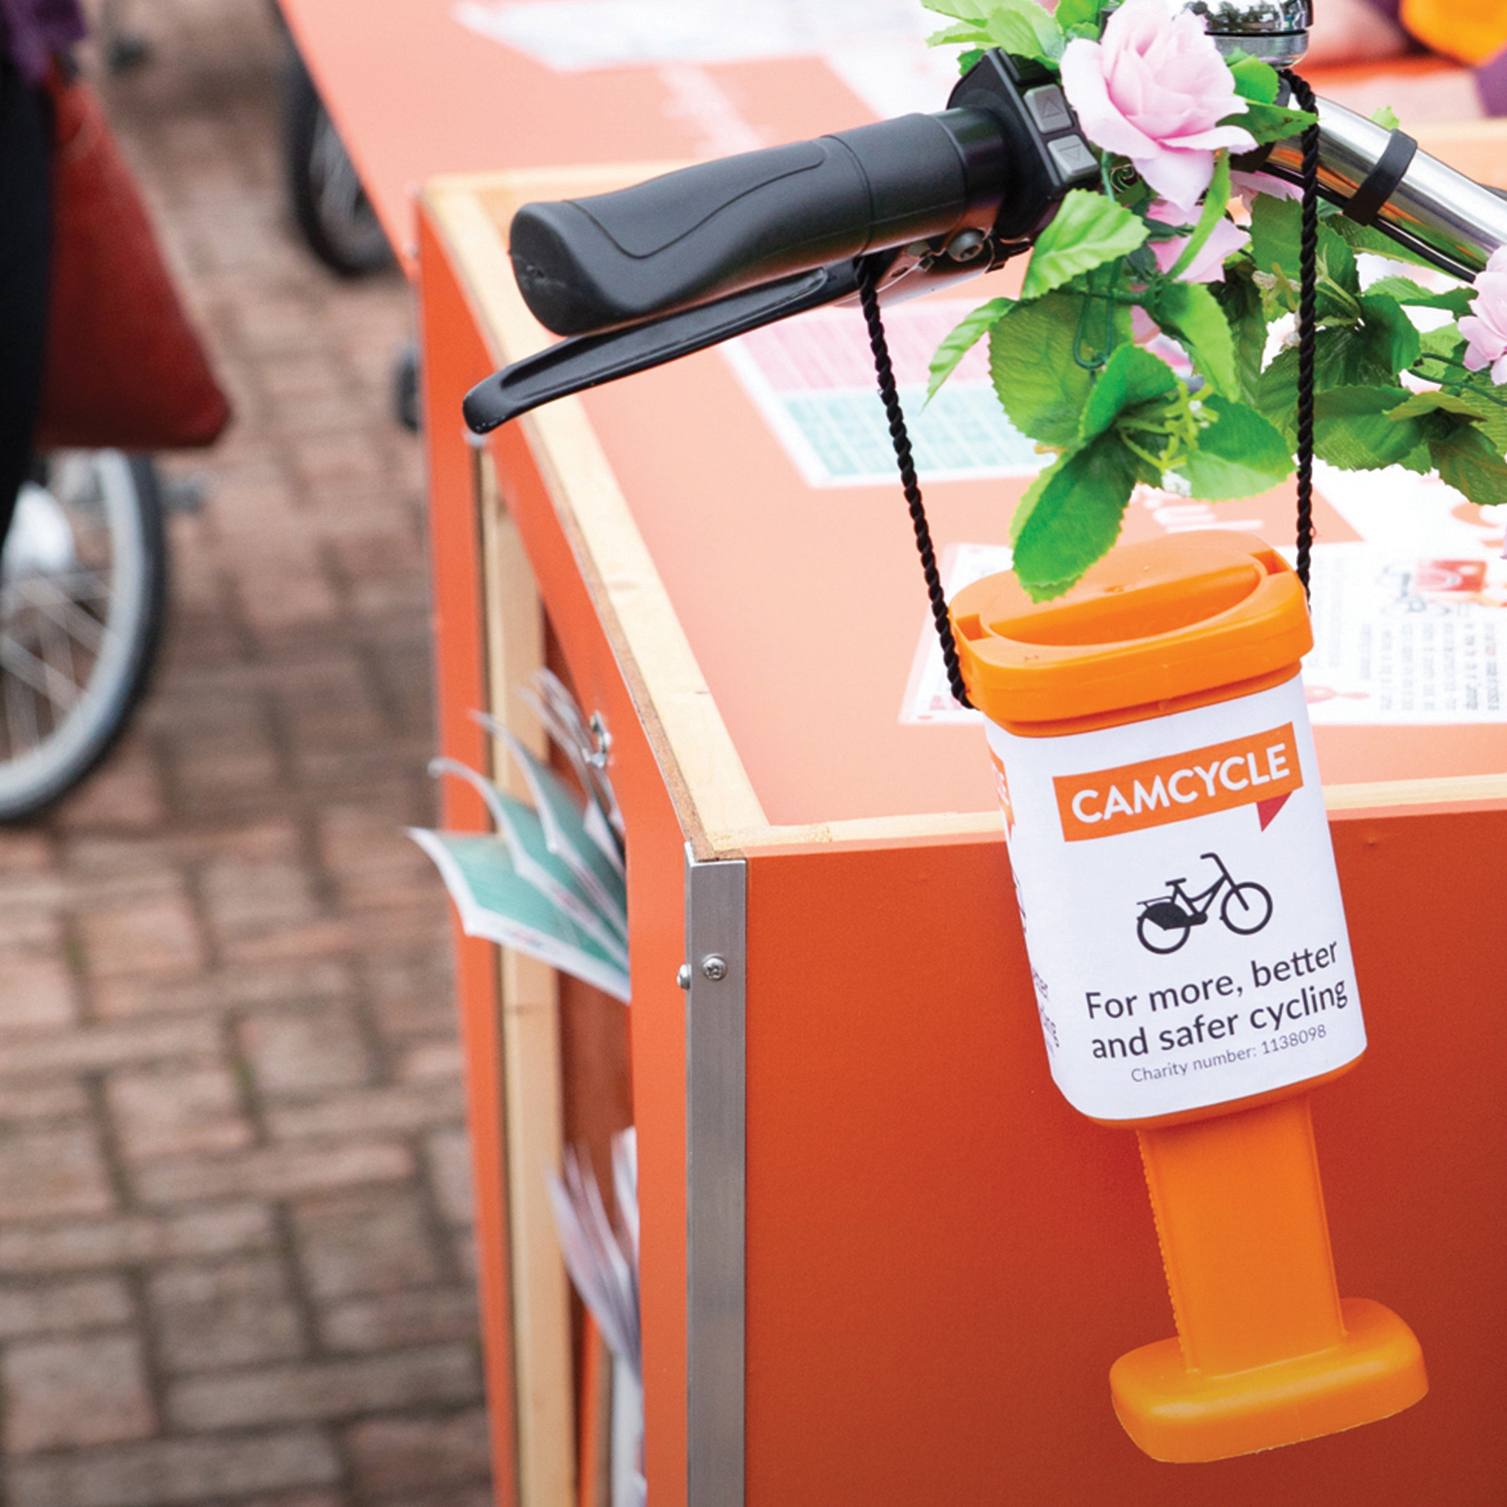 Camcycle fundraising tin